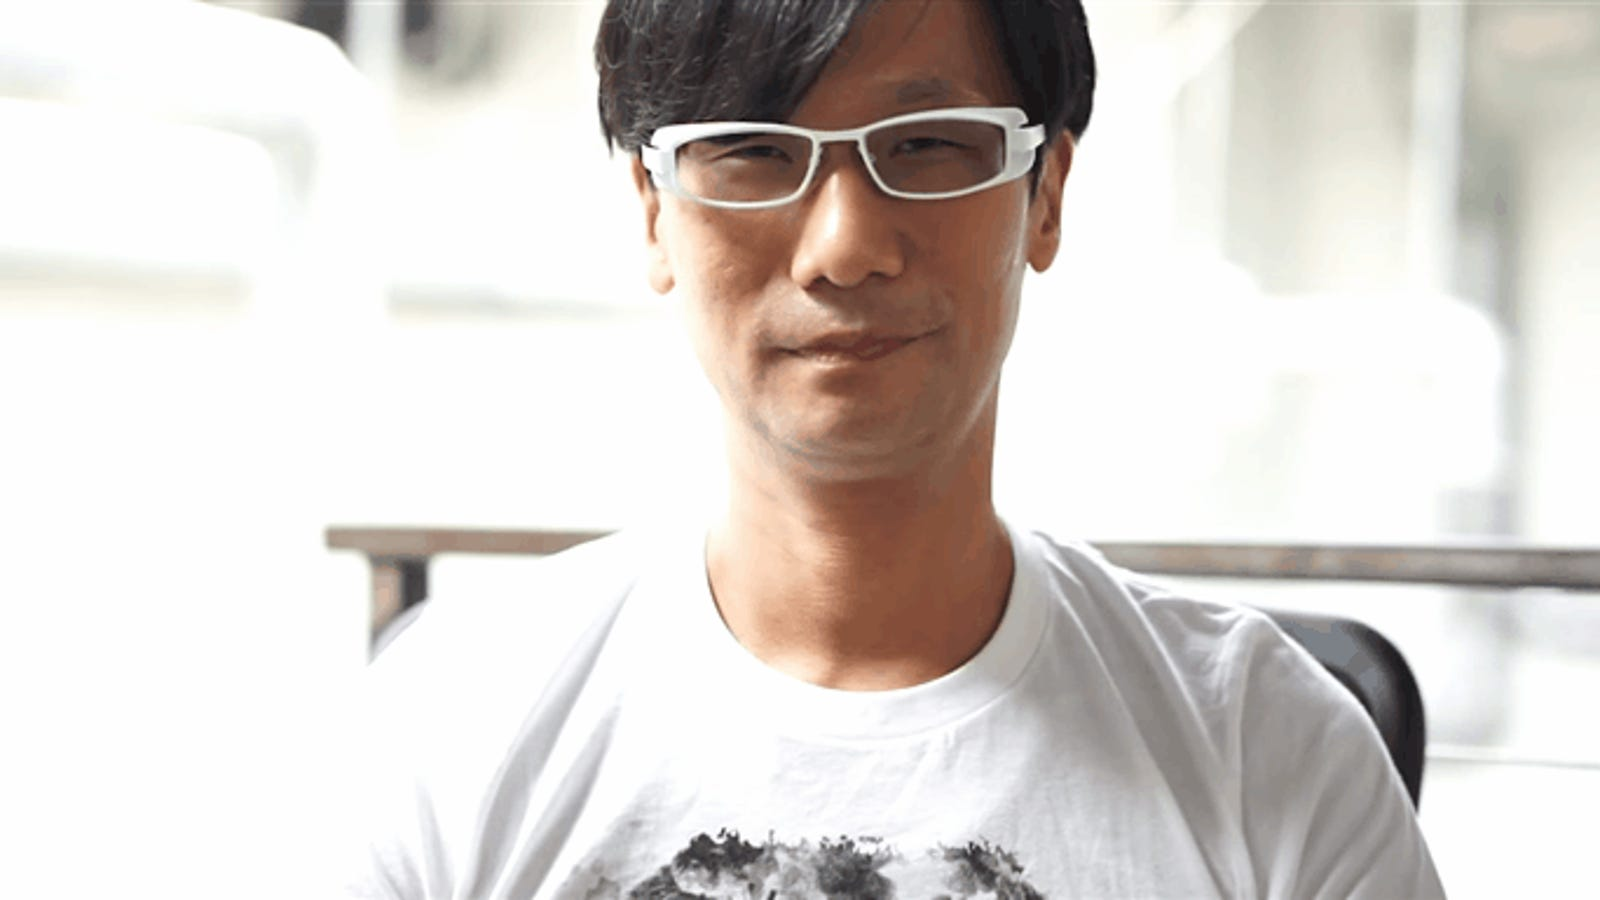 Hideo Kojima Talks About The Challenges He Experienced After Leaving Konami